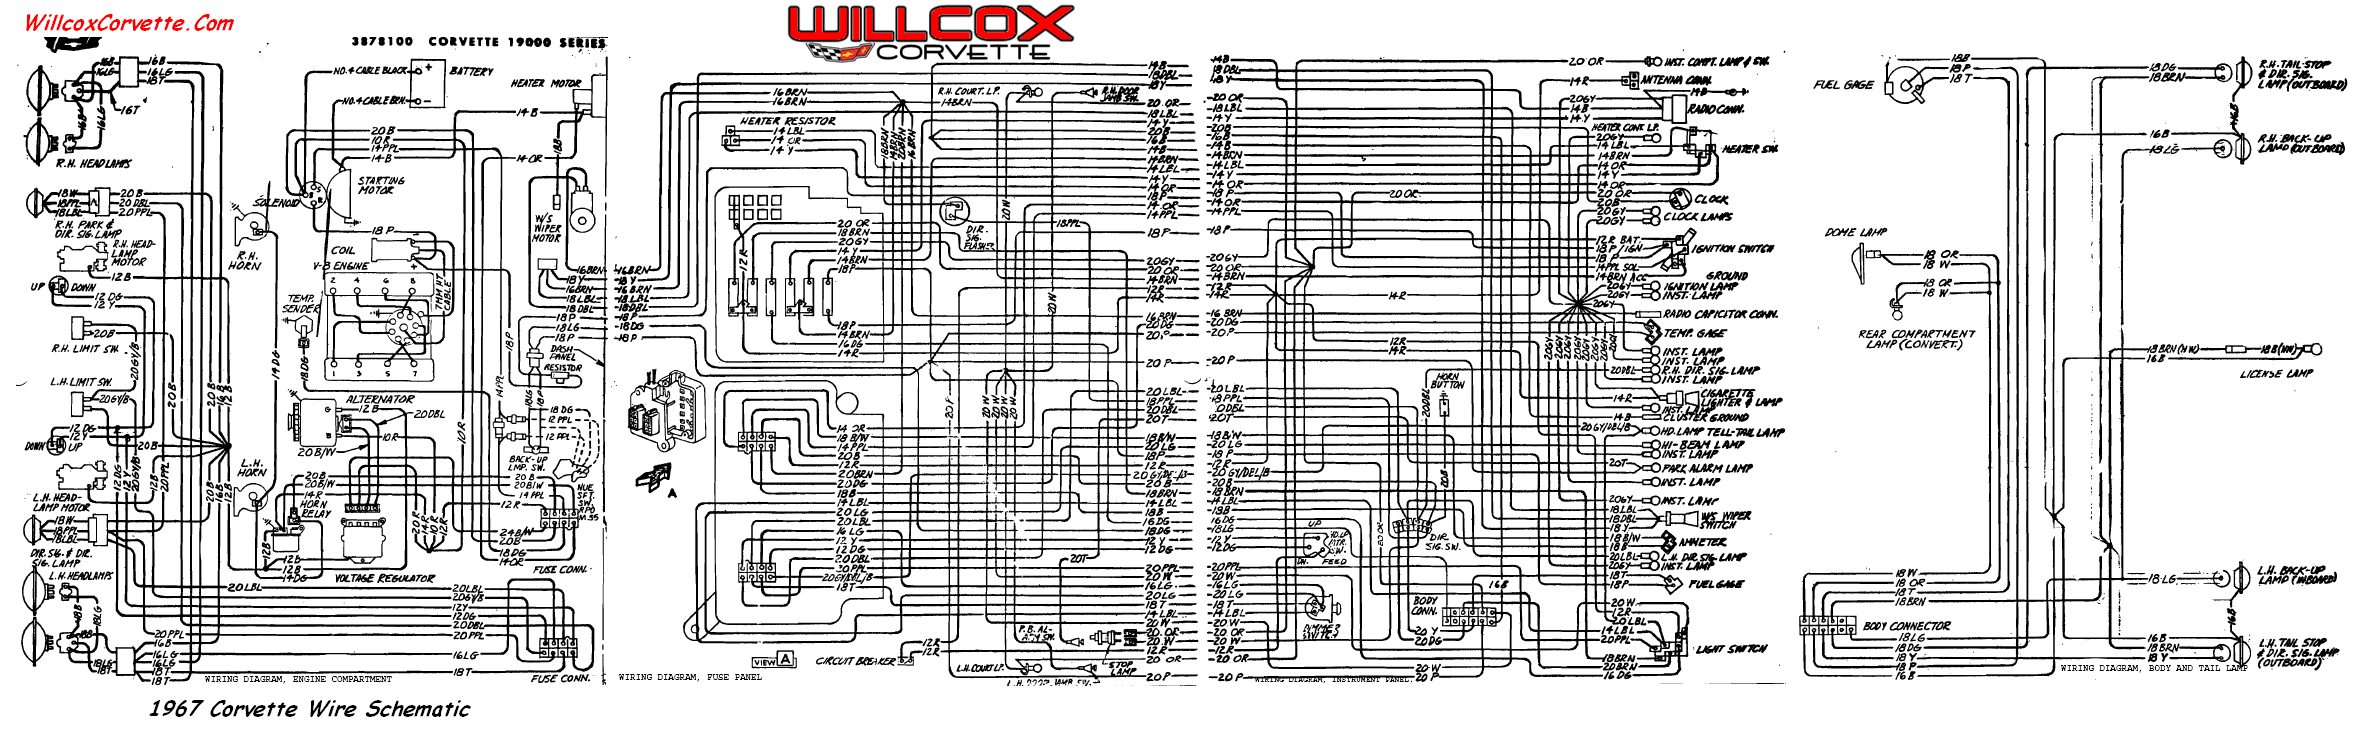 1967 Corvette Wiring Diagram tracer schematic Willcox Corvette Inc